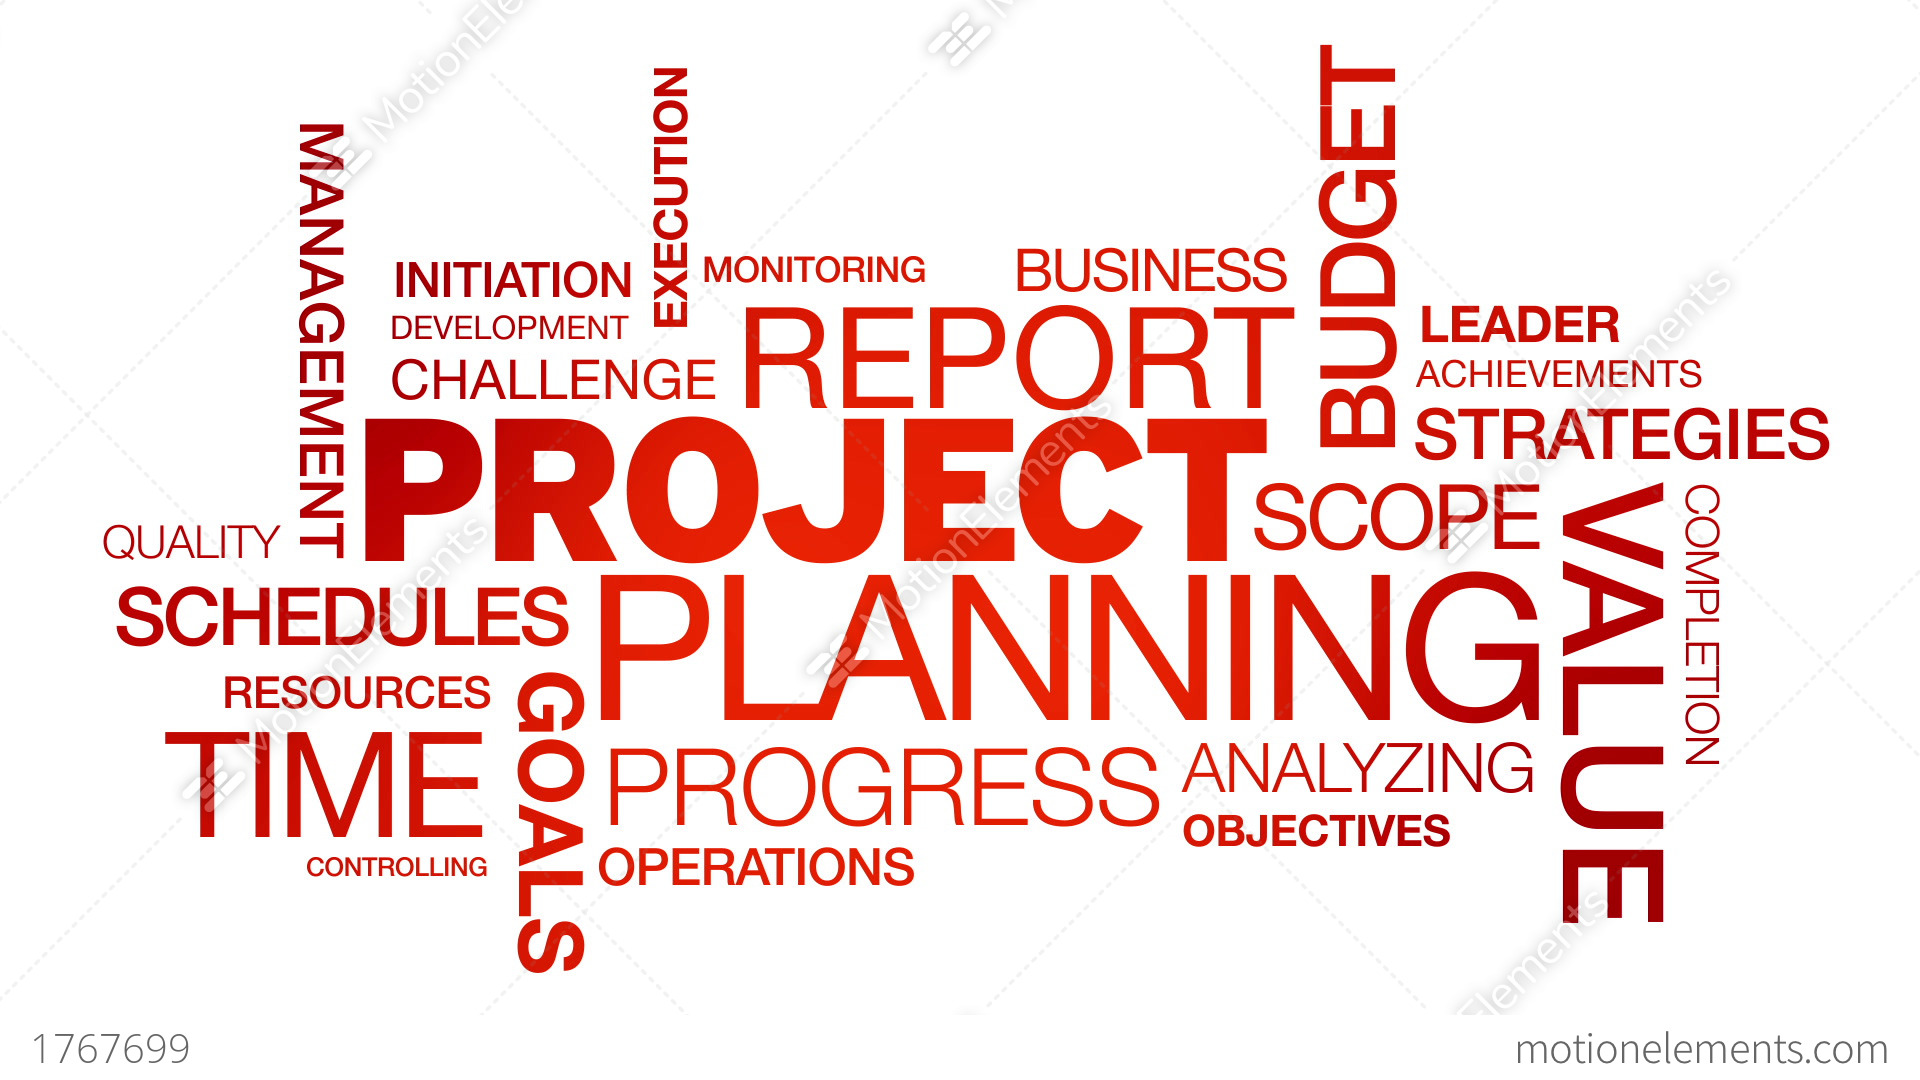 Software Search business planning software